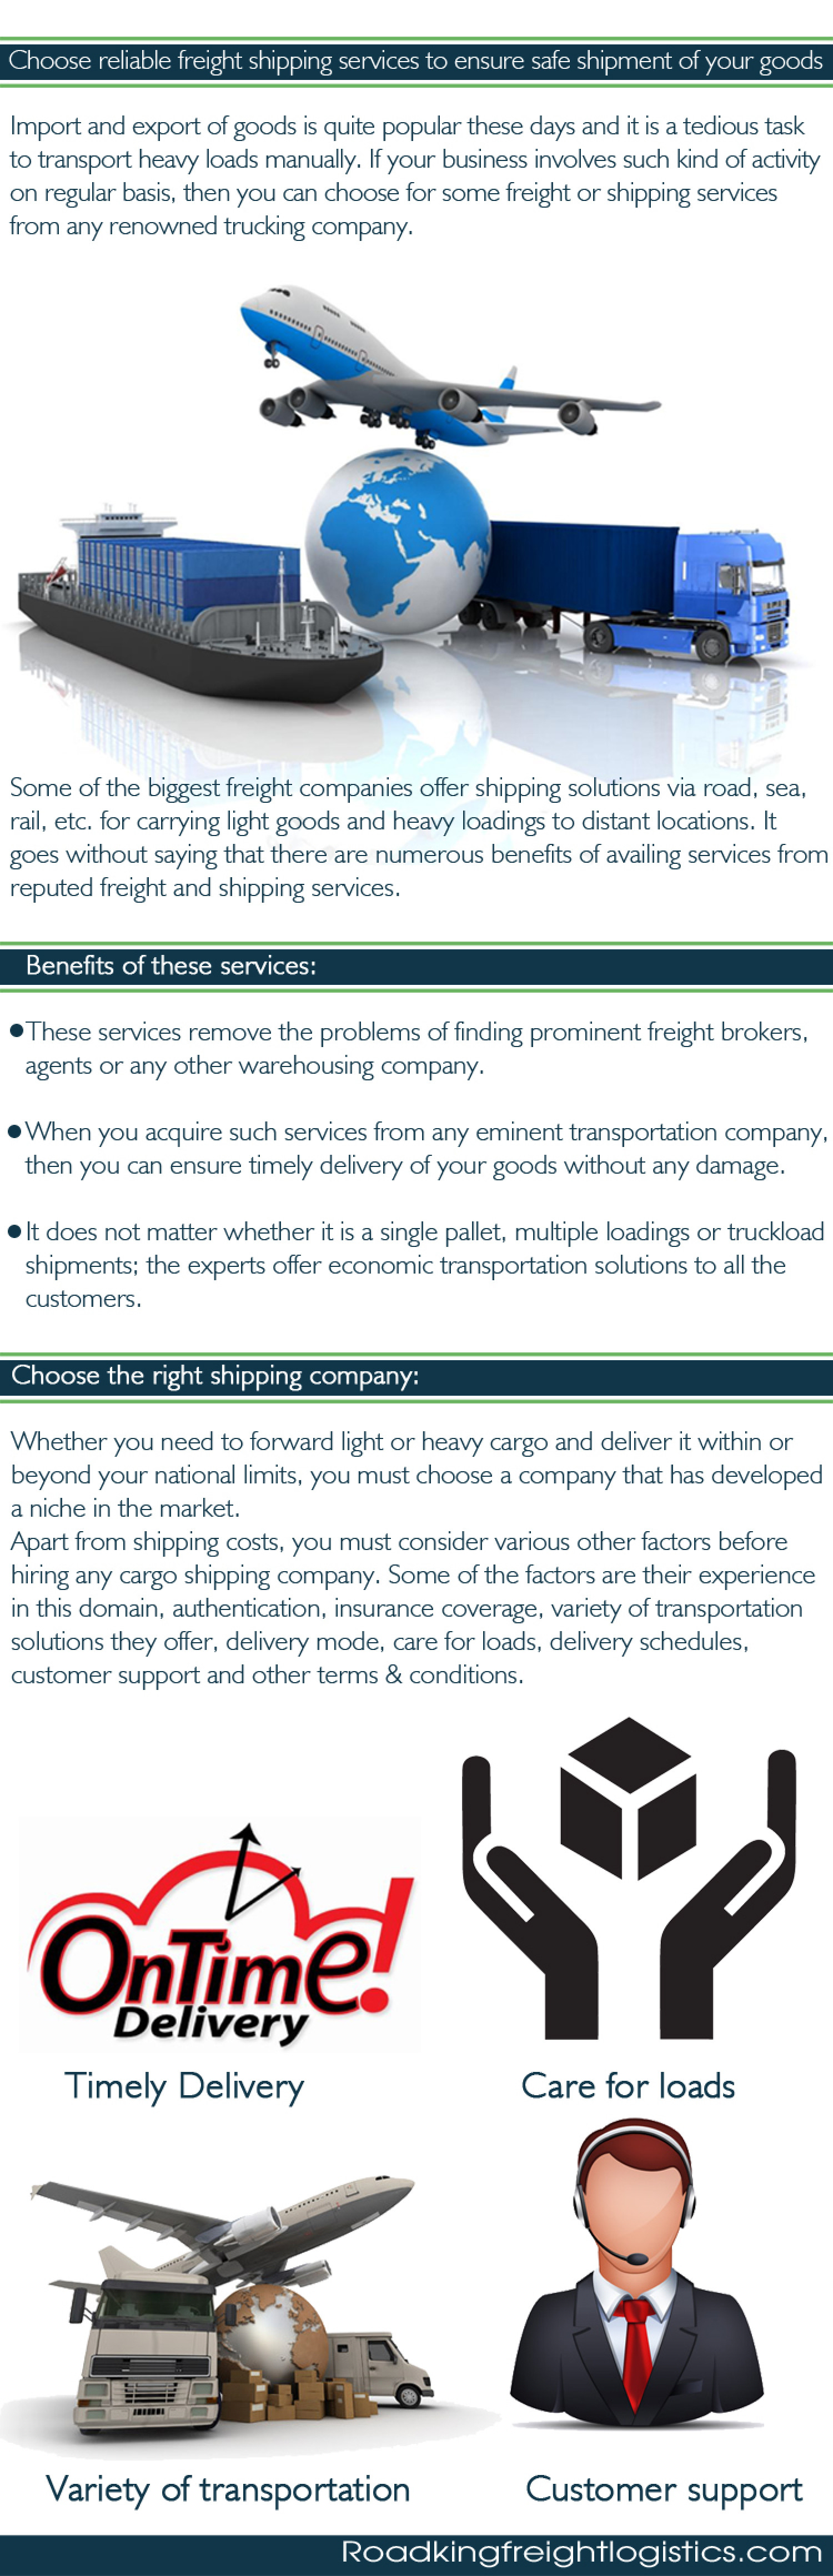 Choose Reliable Freight Shipping Services to Ensure Safe Shipment of Your Goods Infographic